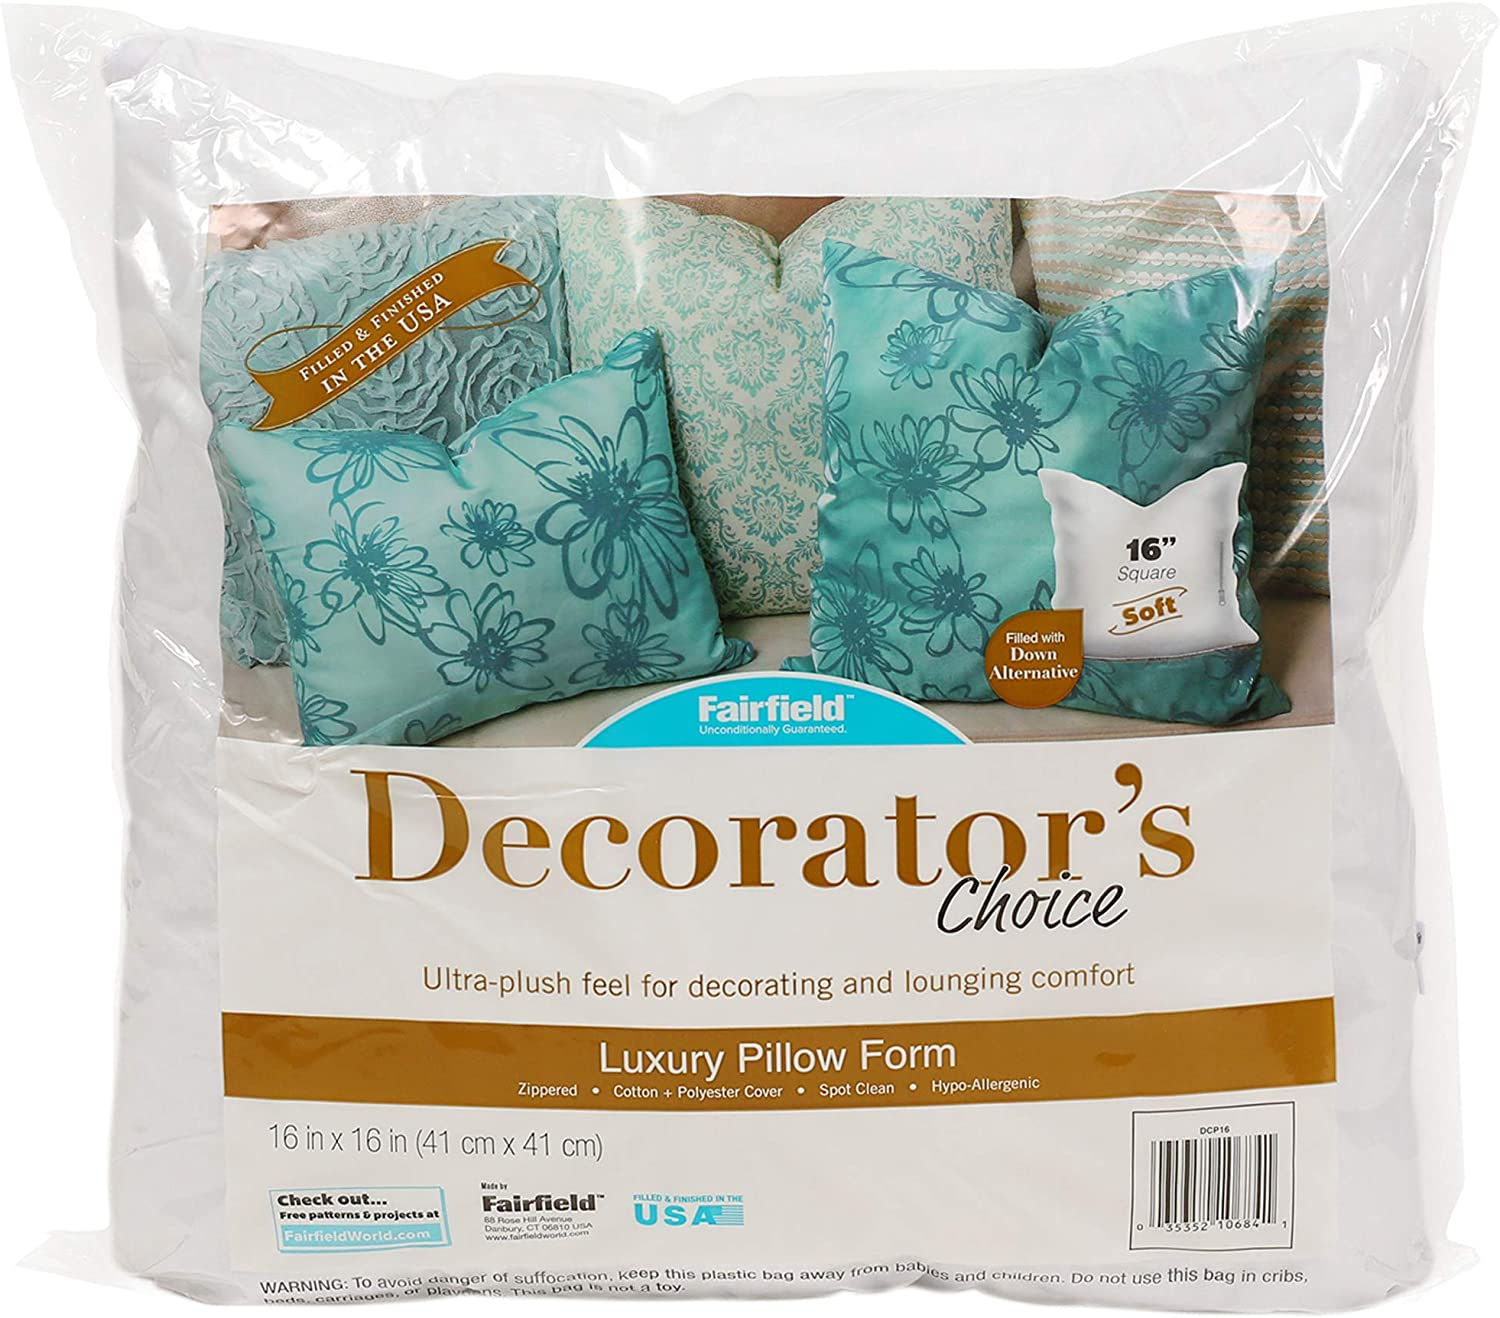 Fairfield Decorators Choice Pillow 16in x 16in